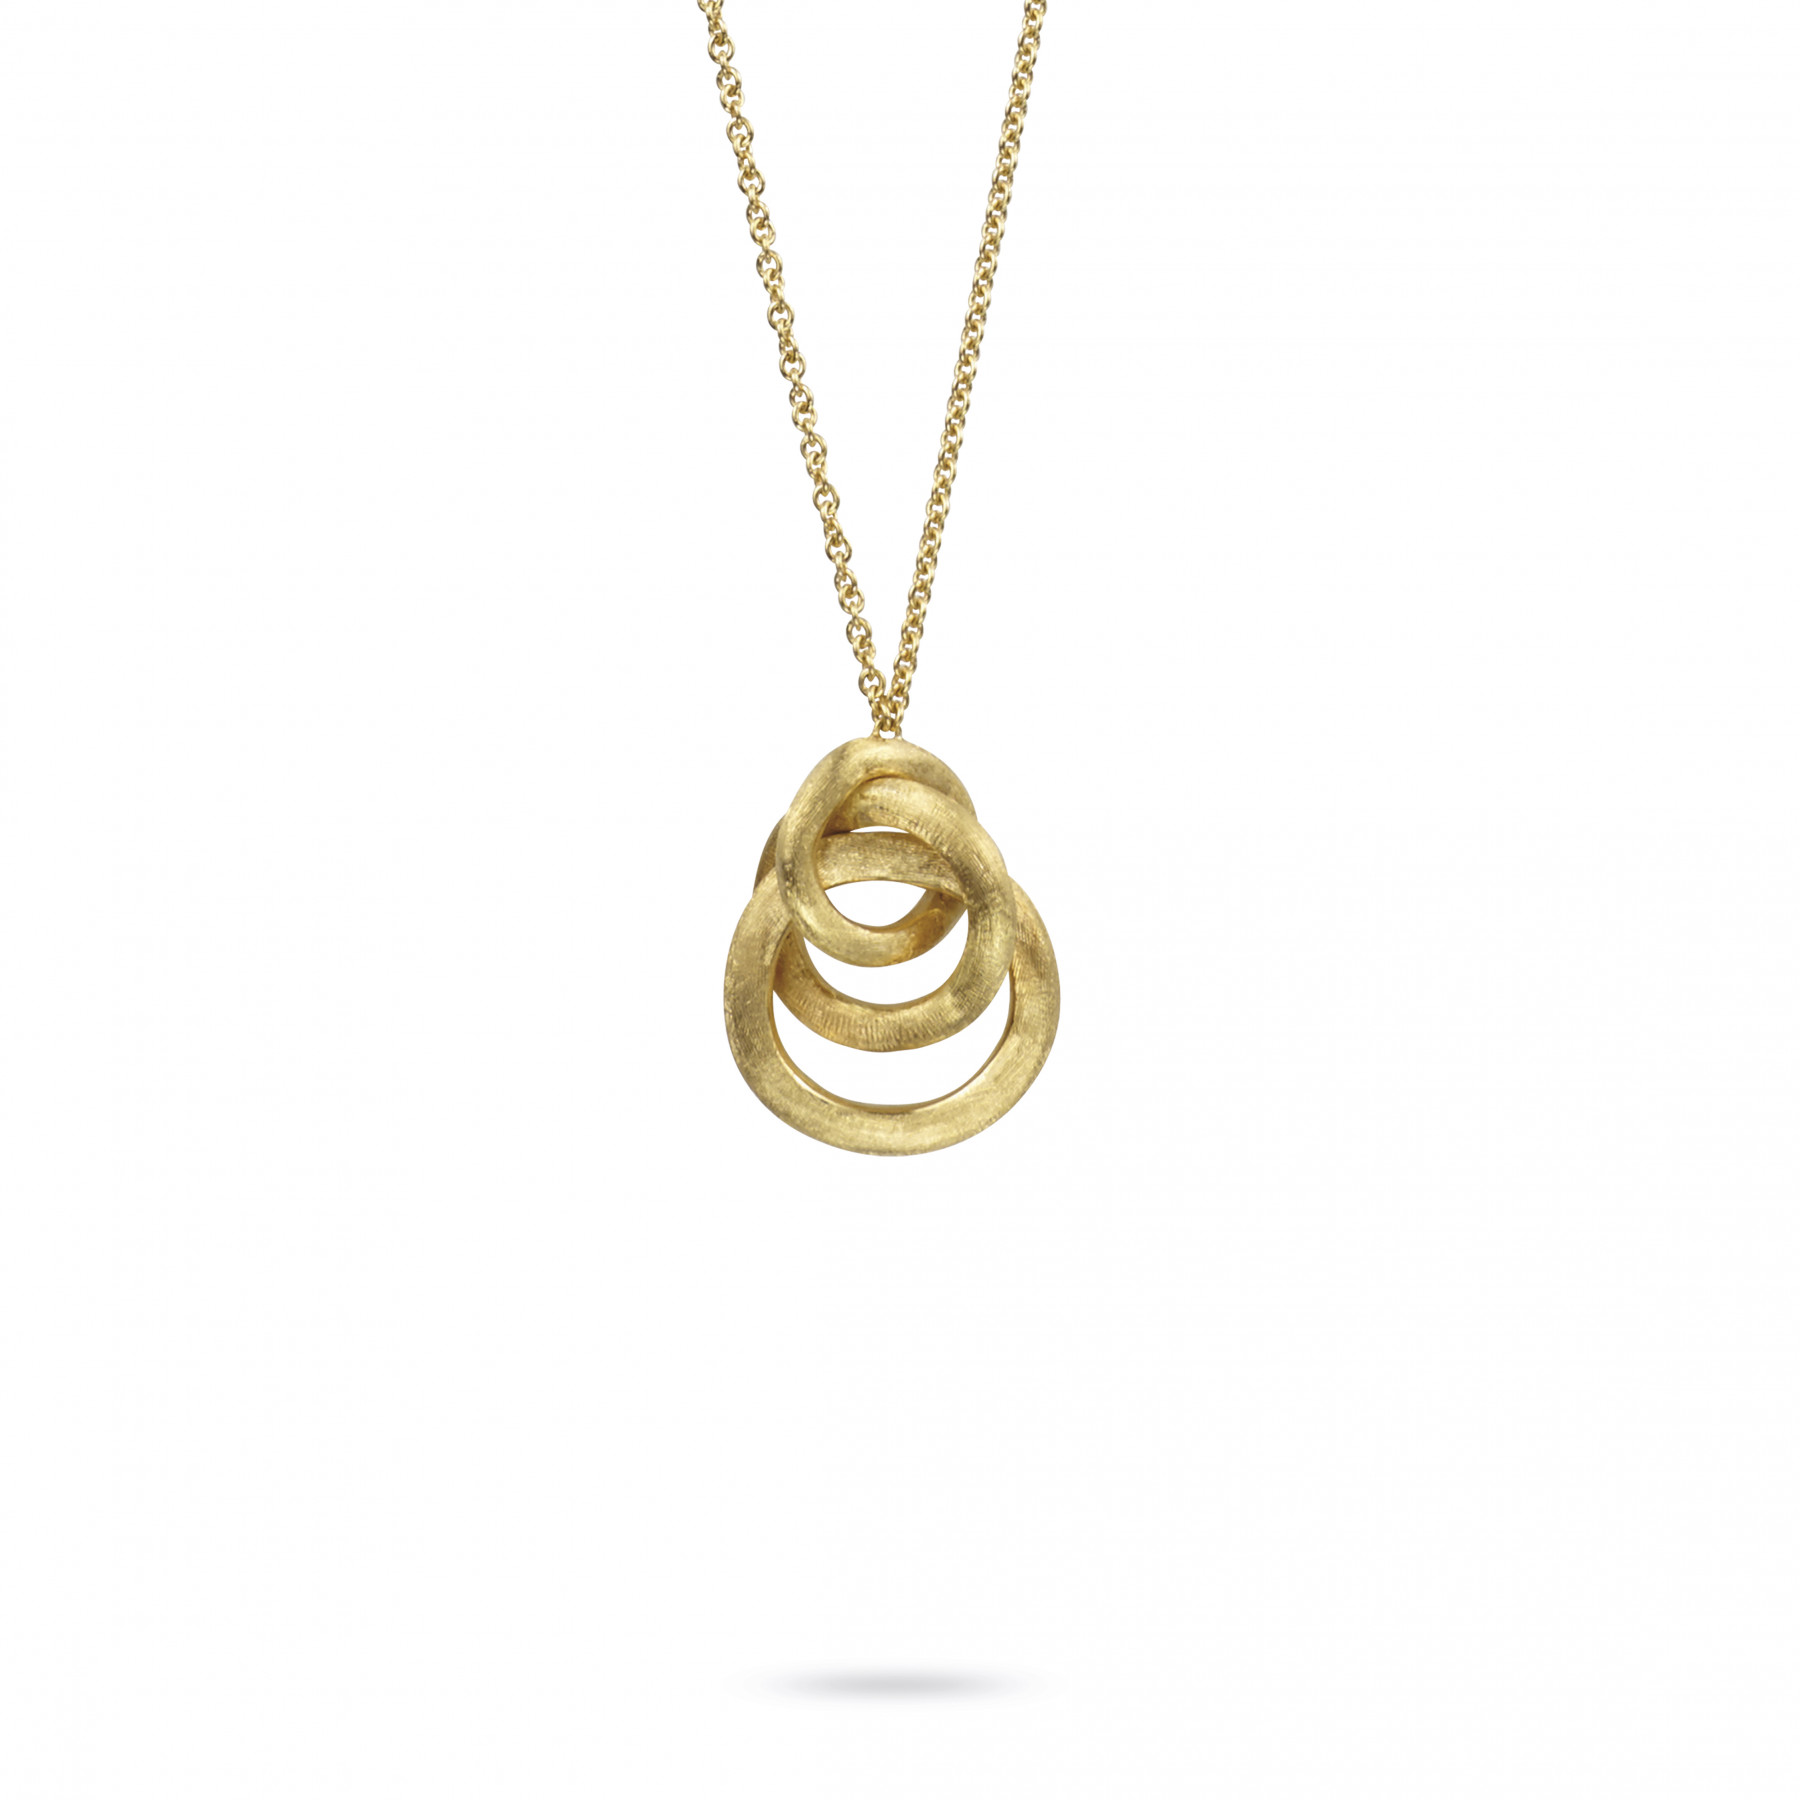 Marco Bicego Jaipur Triple Circle Link Pendant in 18kt Yellow Gold